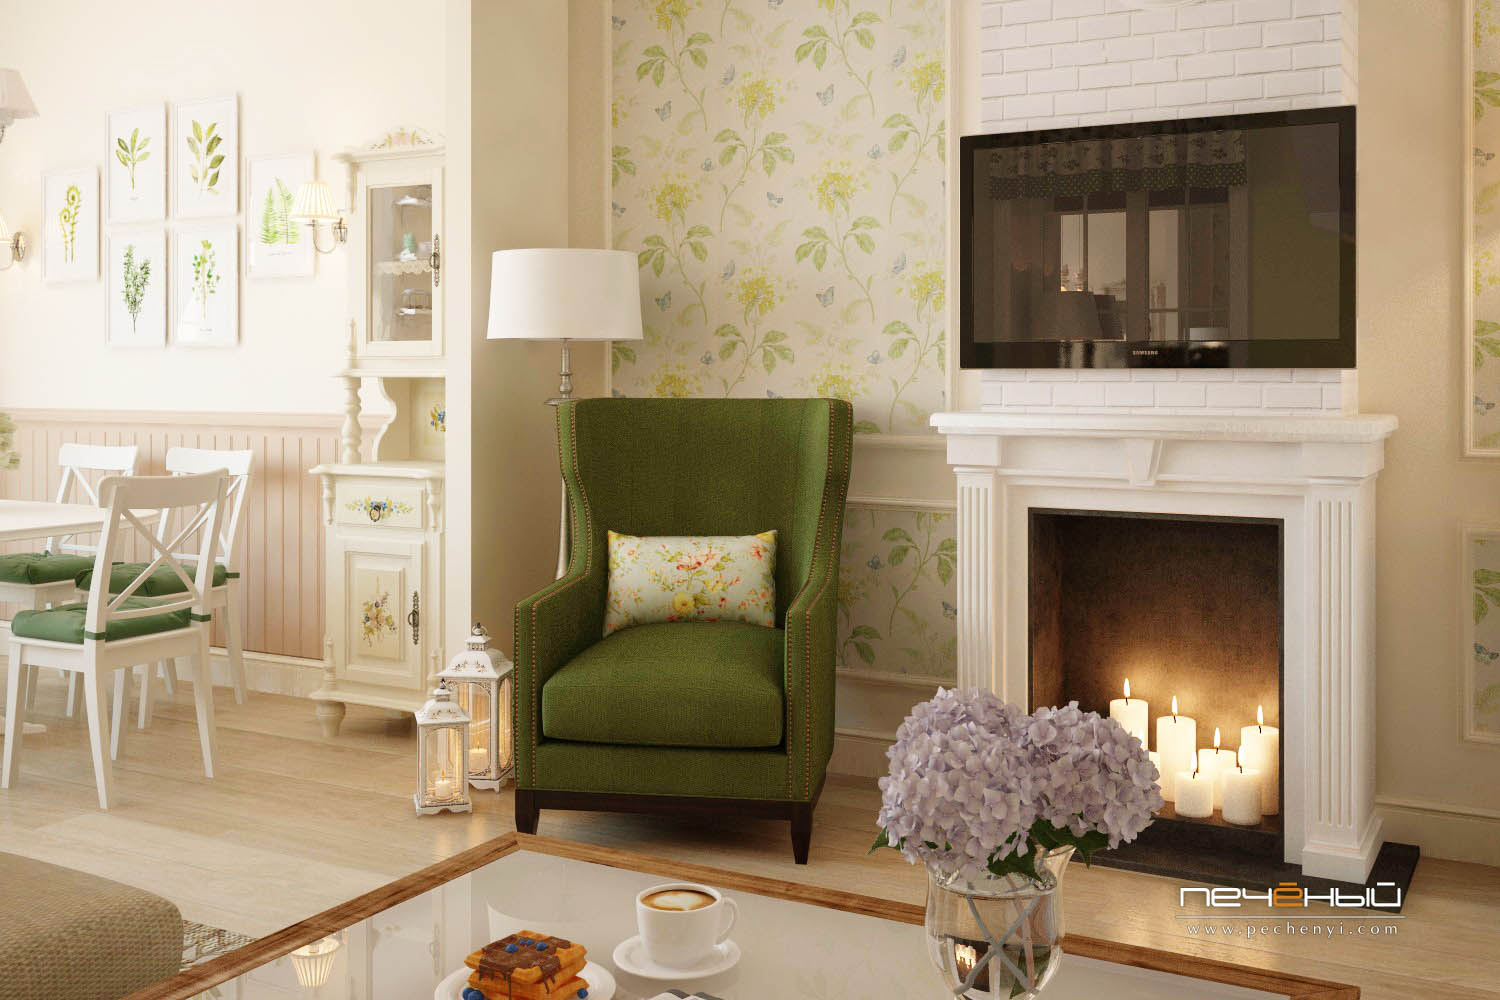 This is a part of the seating room with a faux fireplace and a cozy green armchair to spend evenings there